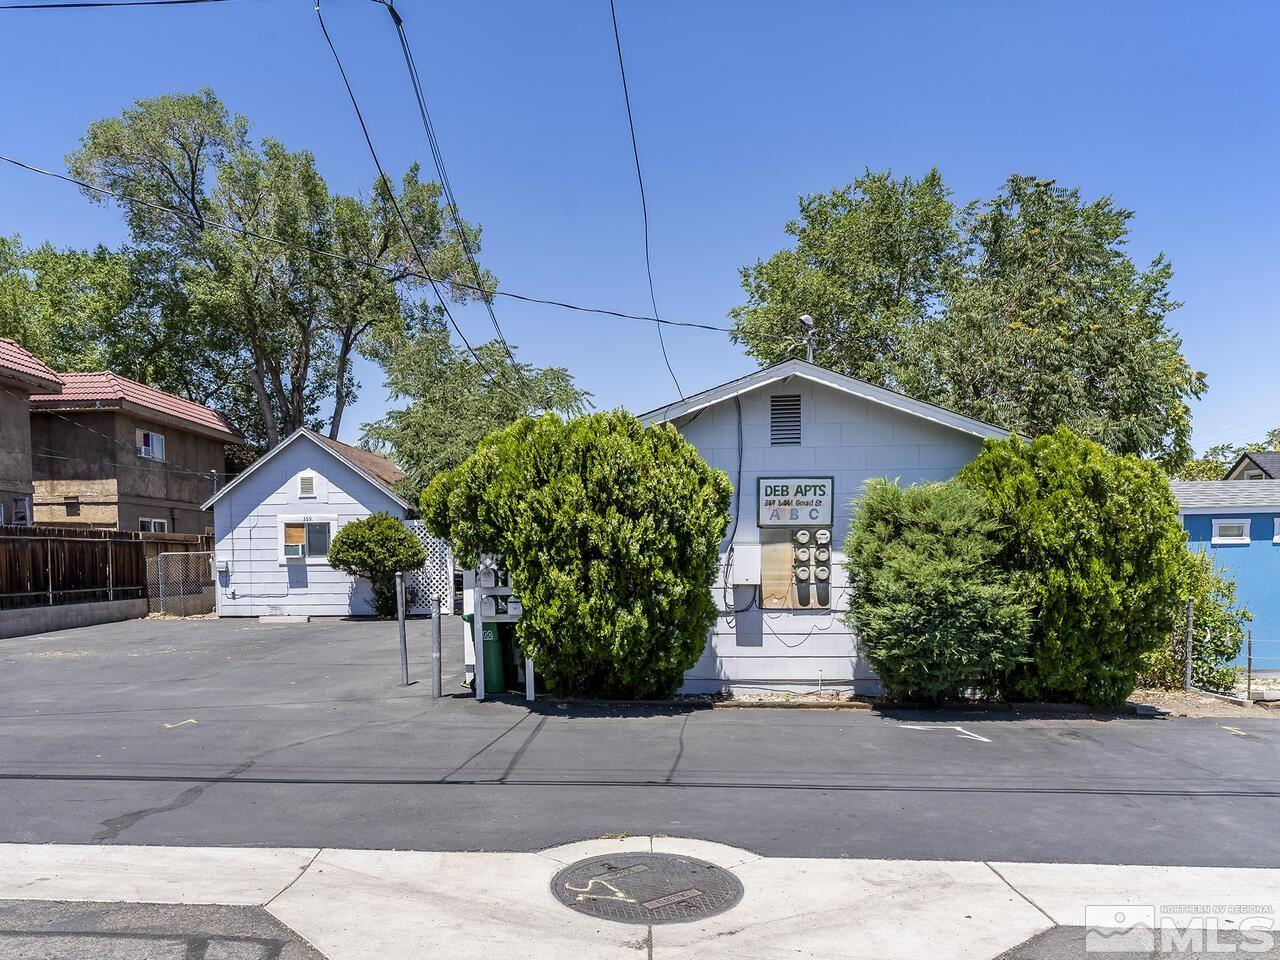 Image for 361 Gould Street, Reno, NV 89502-1770